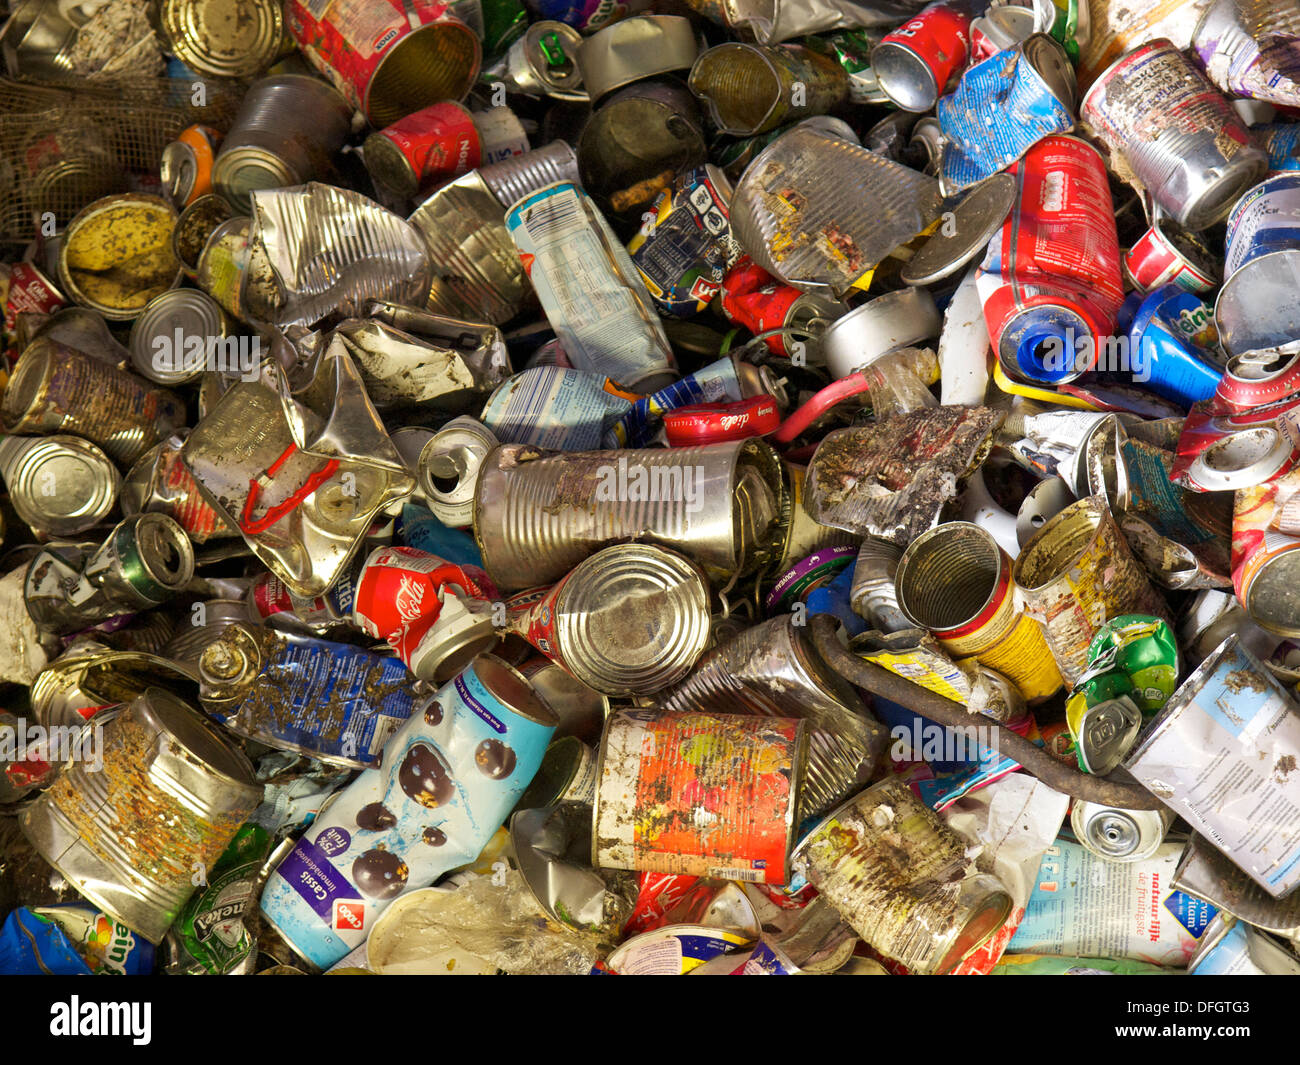 Metal items separated from household waste in recycling plant, ready to be sold and used again. - Stock Image